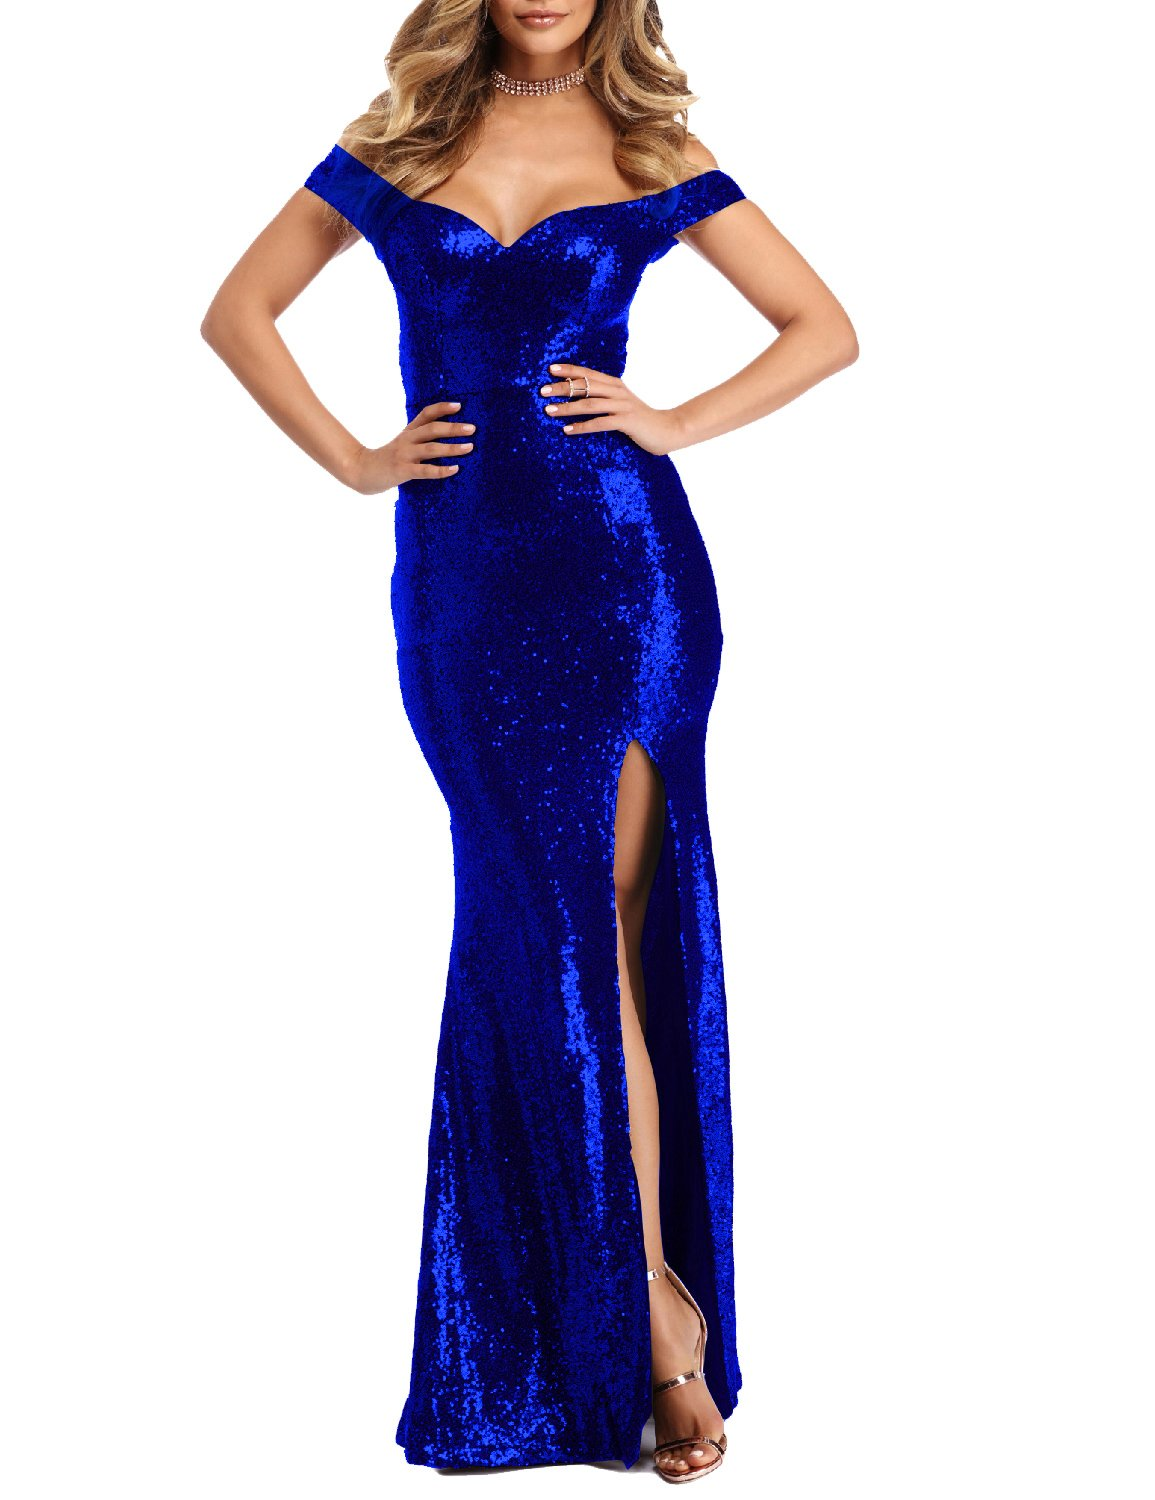 YSMei Womens Off Shoulder Sequins Evening Dress Split Mermaid Prom Gown YPM464